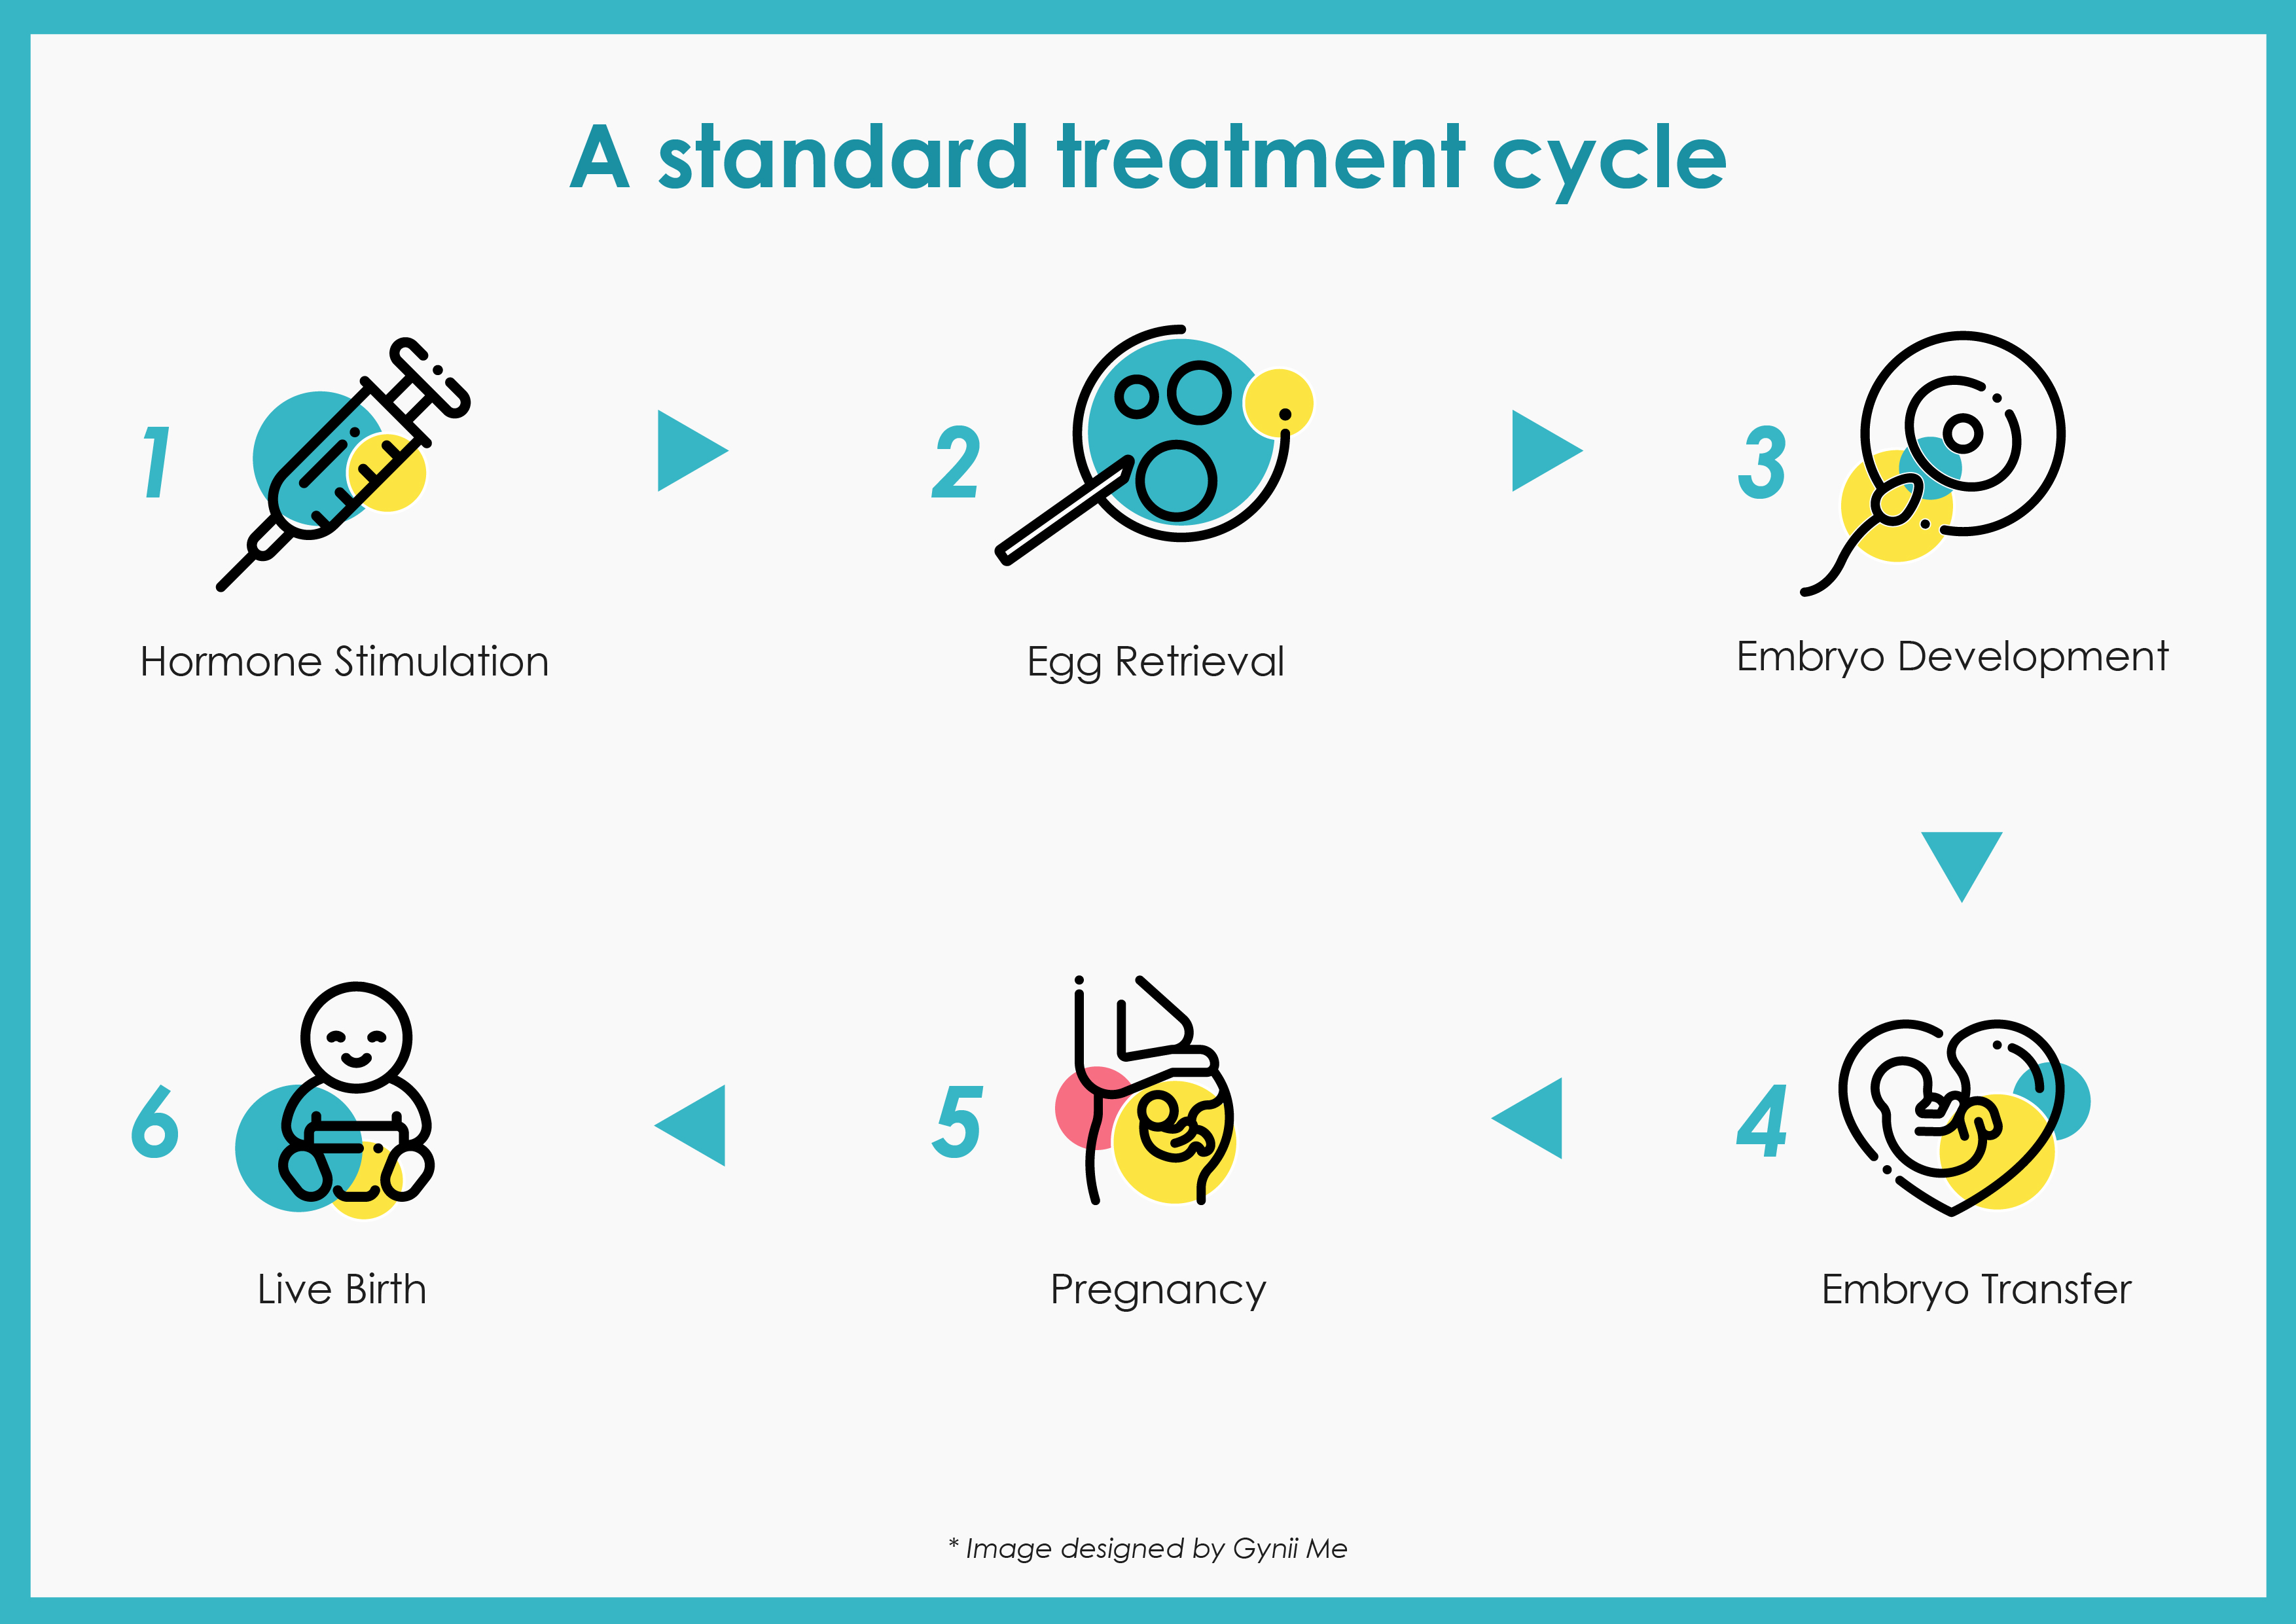 A standard IVF treatment cycle